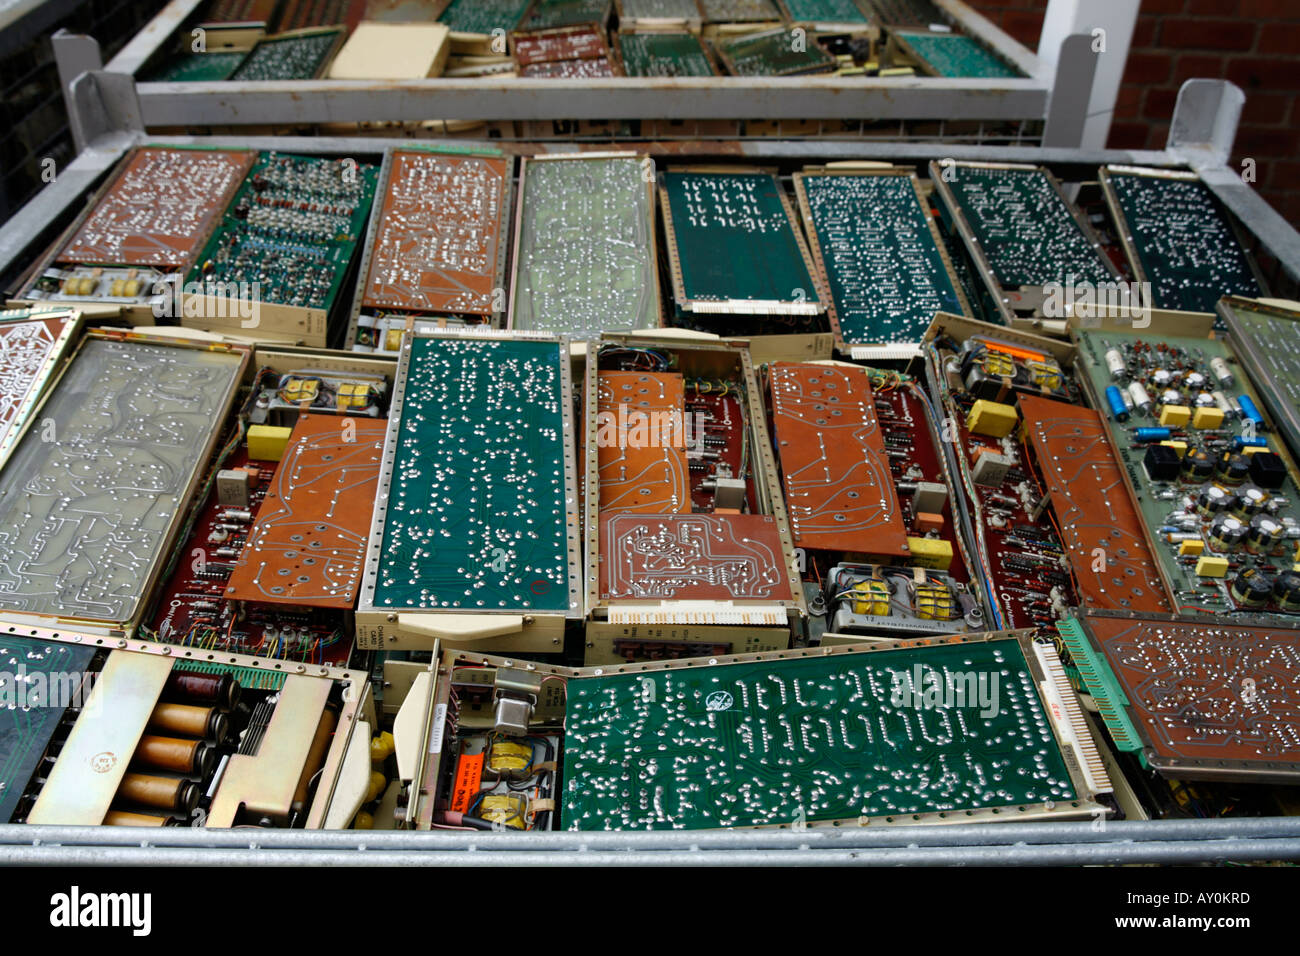 Recycled Circuit Board Notebook Electronic Waste Stock Photos Images Alamy In Skips Ready For Disposal Boards From Redundant Equipment Image